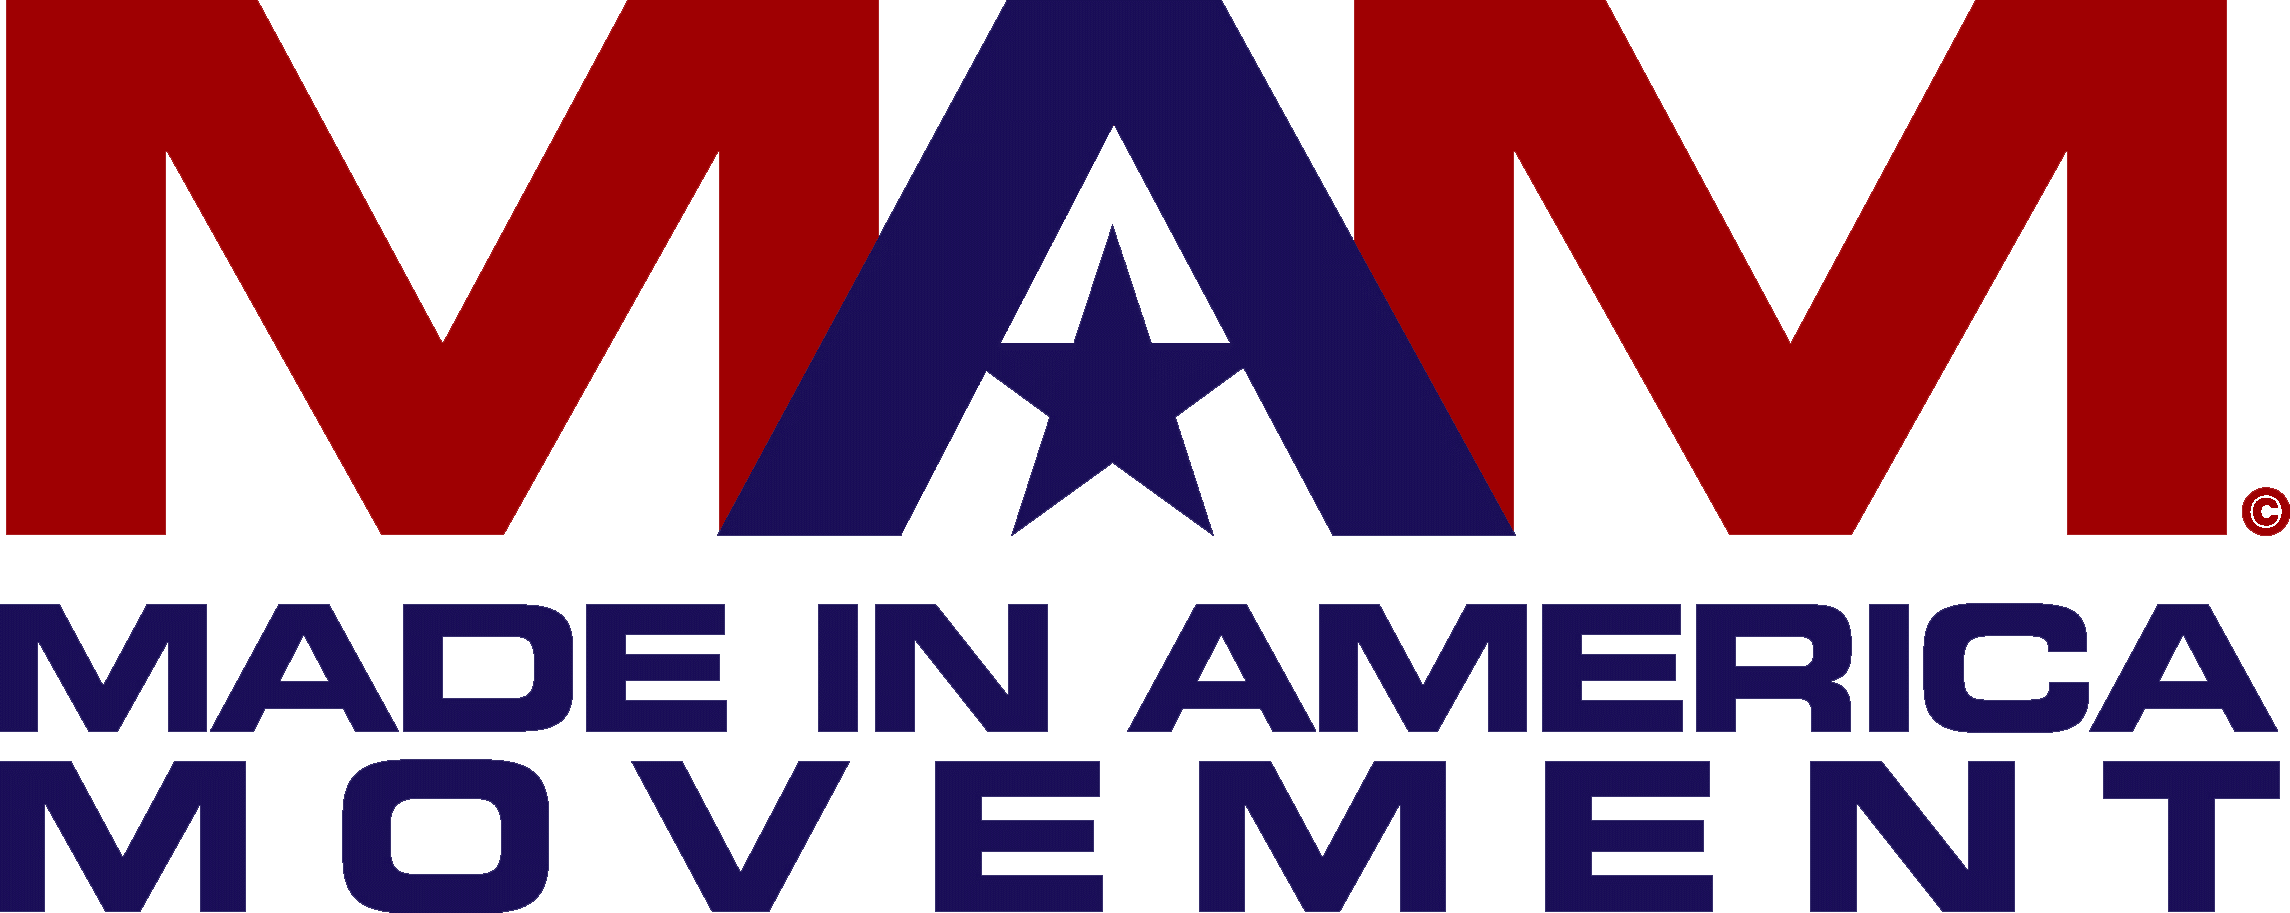 Made_in_America_Movement_RedBlue_Logos_DK